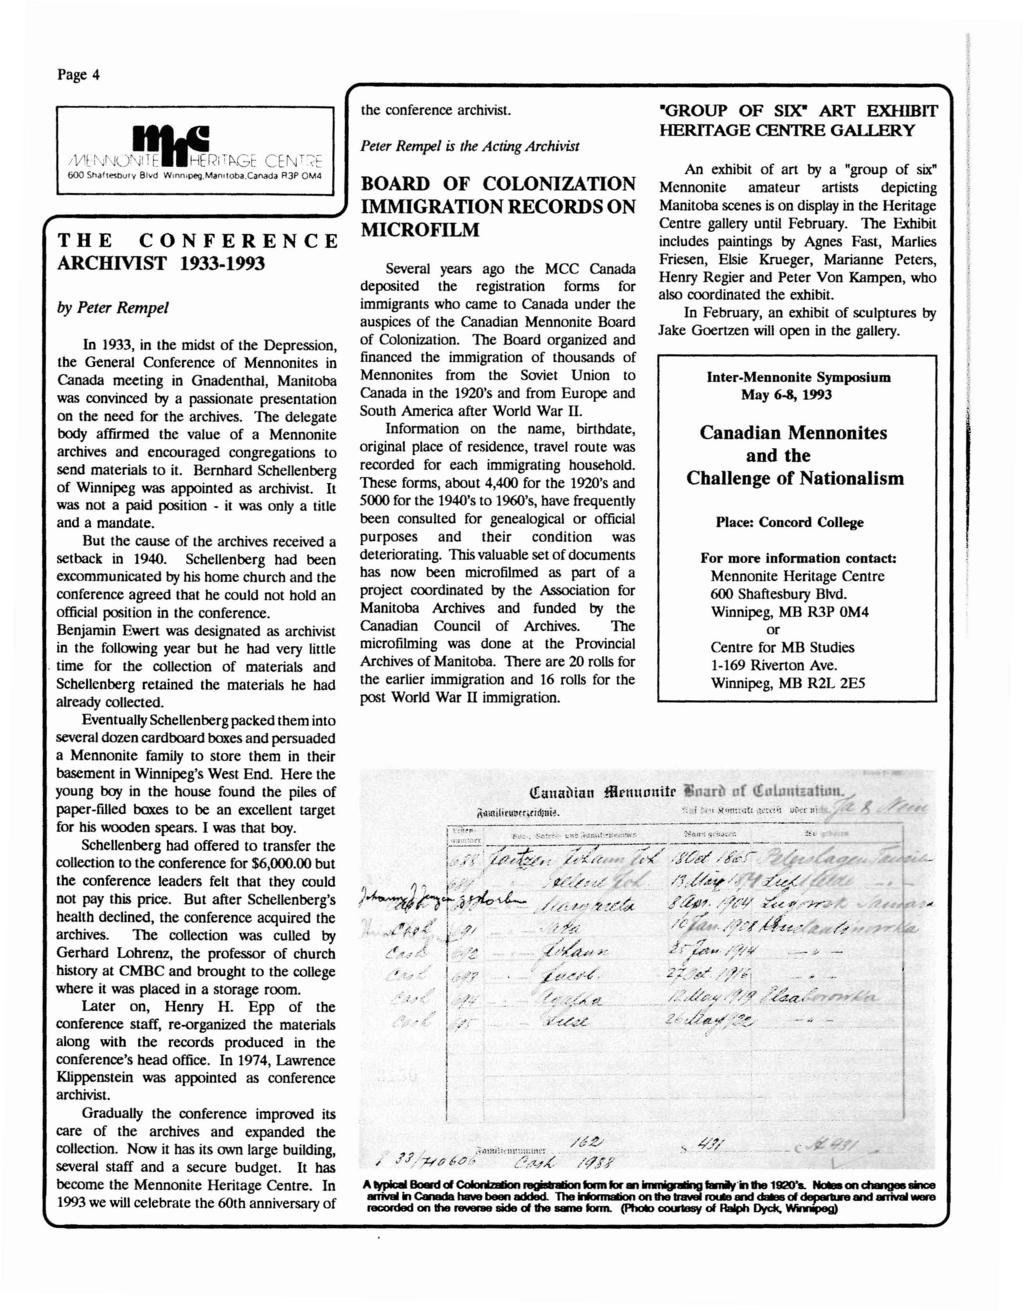 Mennonite historian jacob denners life and writings pdf page 4 the conference archivist 1933 1993 by peter rempel in 1933 in the fandeluxe Choice Image